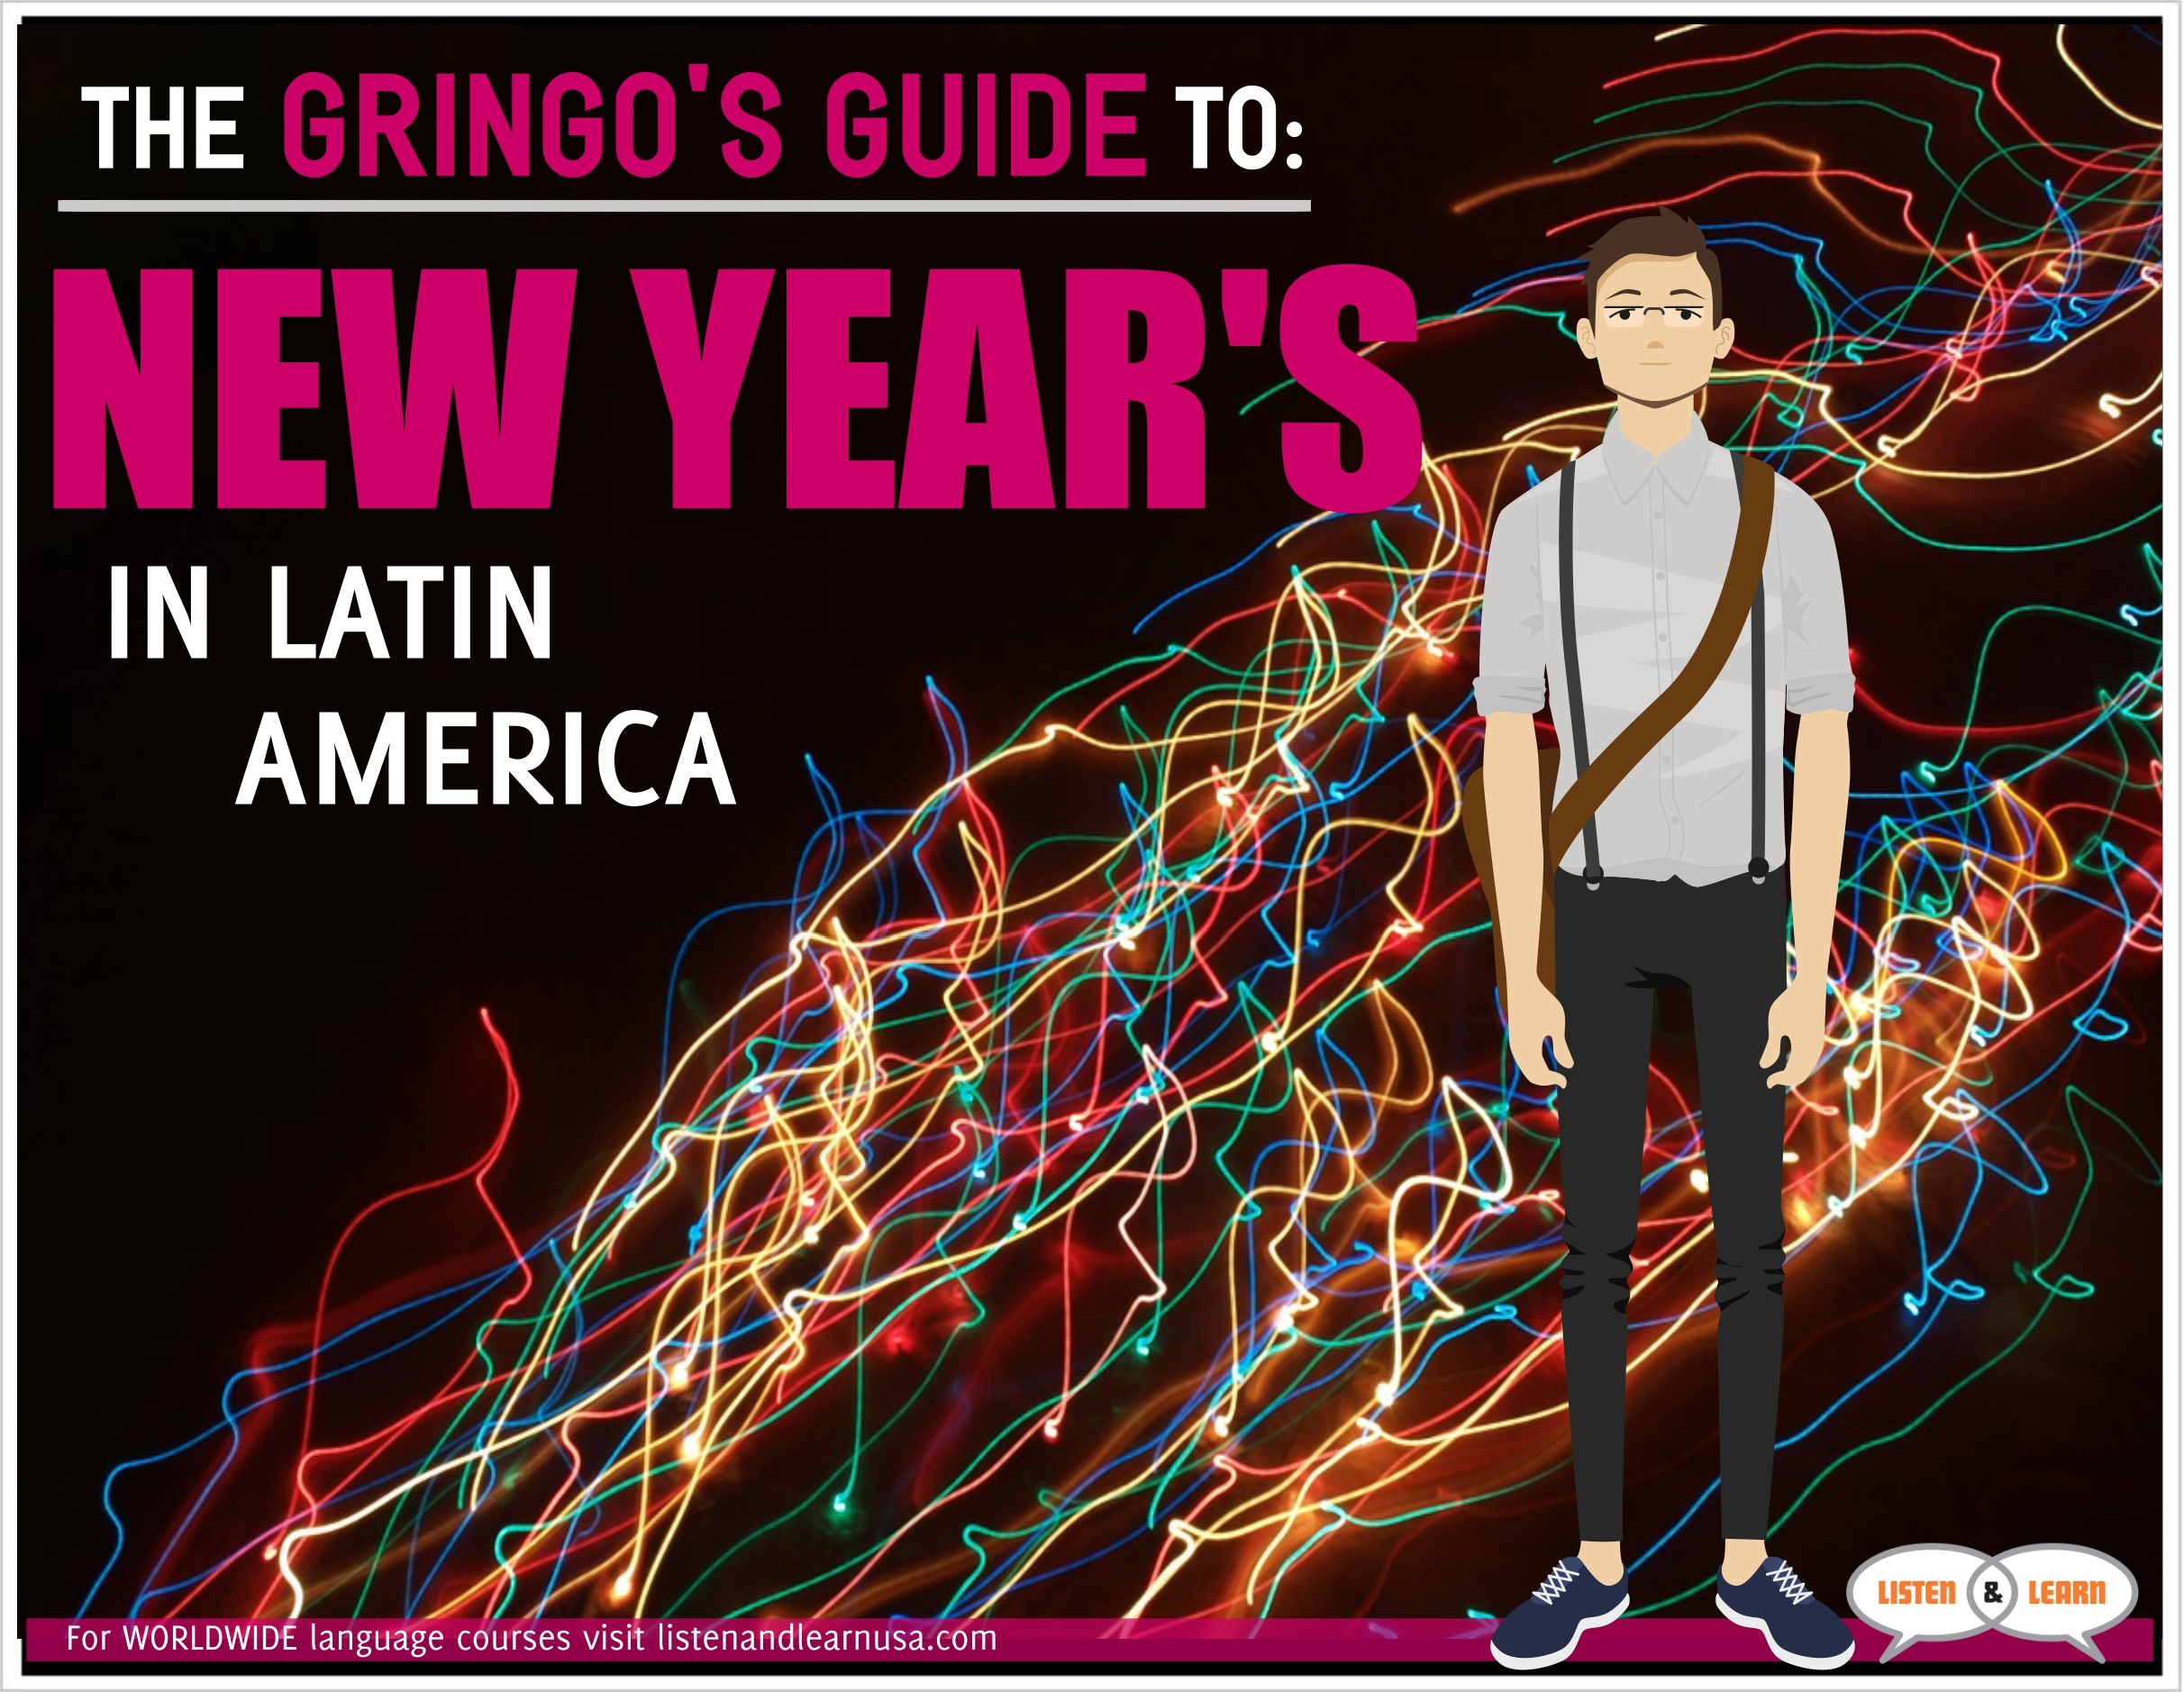 The Gringo's Guide to New Year's Traditions in Latin ...